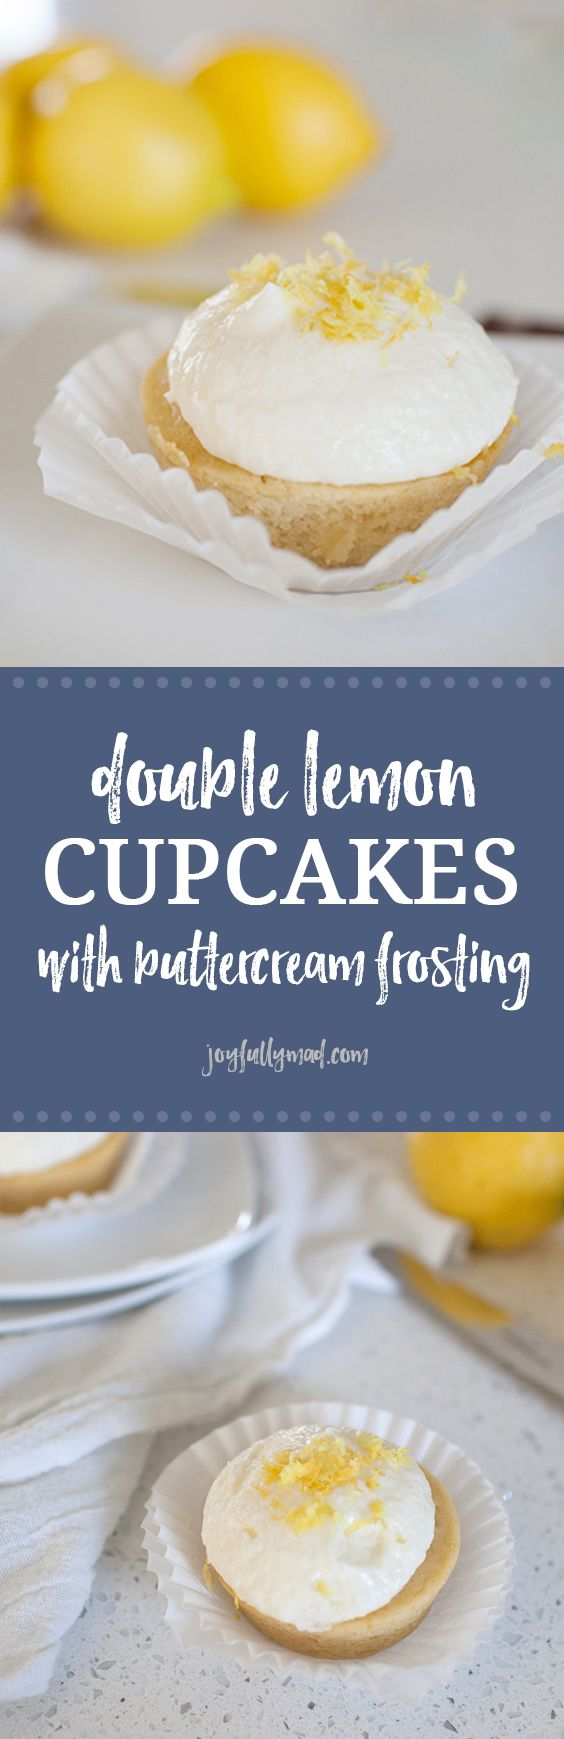 These double lemon cupcakes with buttercream frosting are perfectly tart and sweet and will be a hit at your next get together or just because!